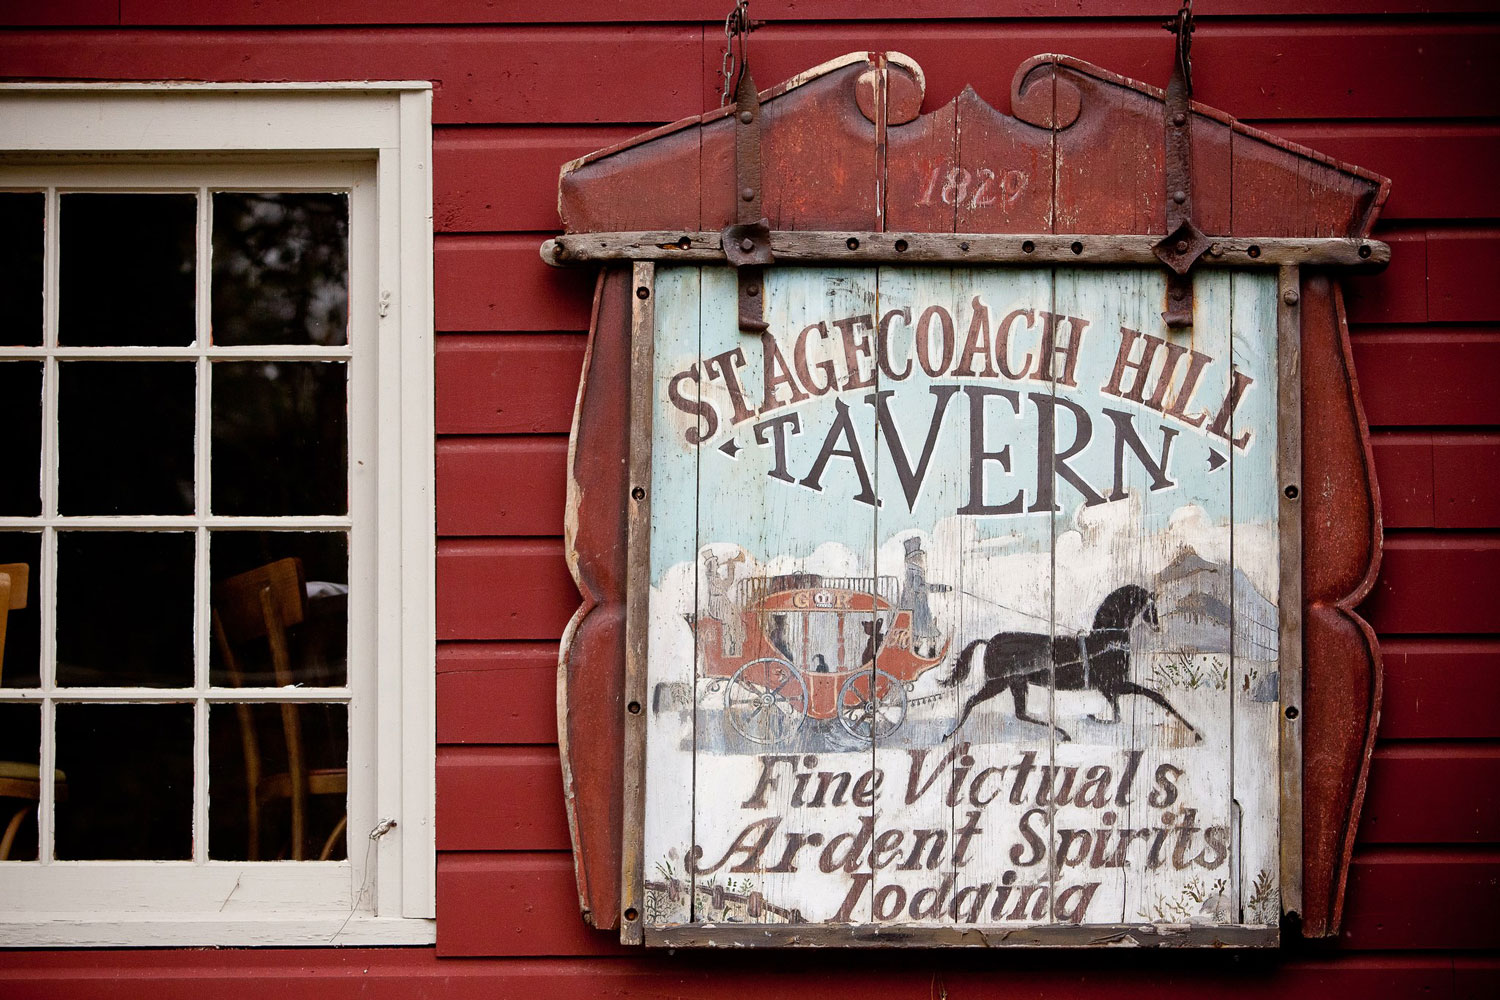 The+Stagecoach+Tavern+sign+(since+1829).jpeg